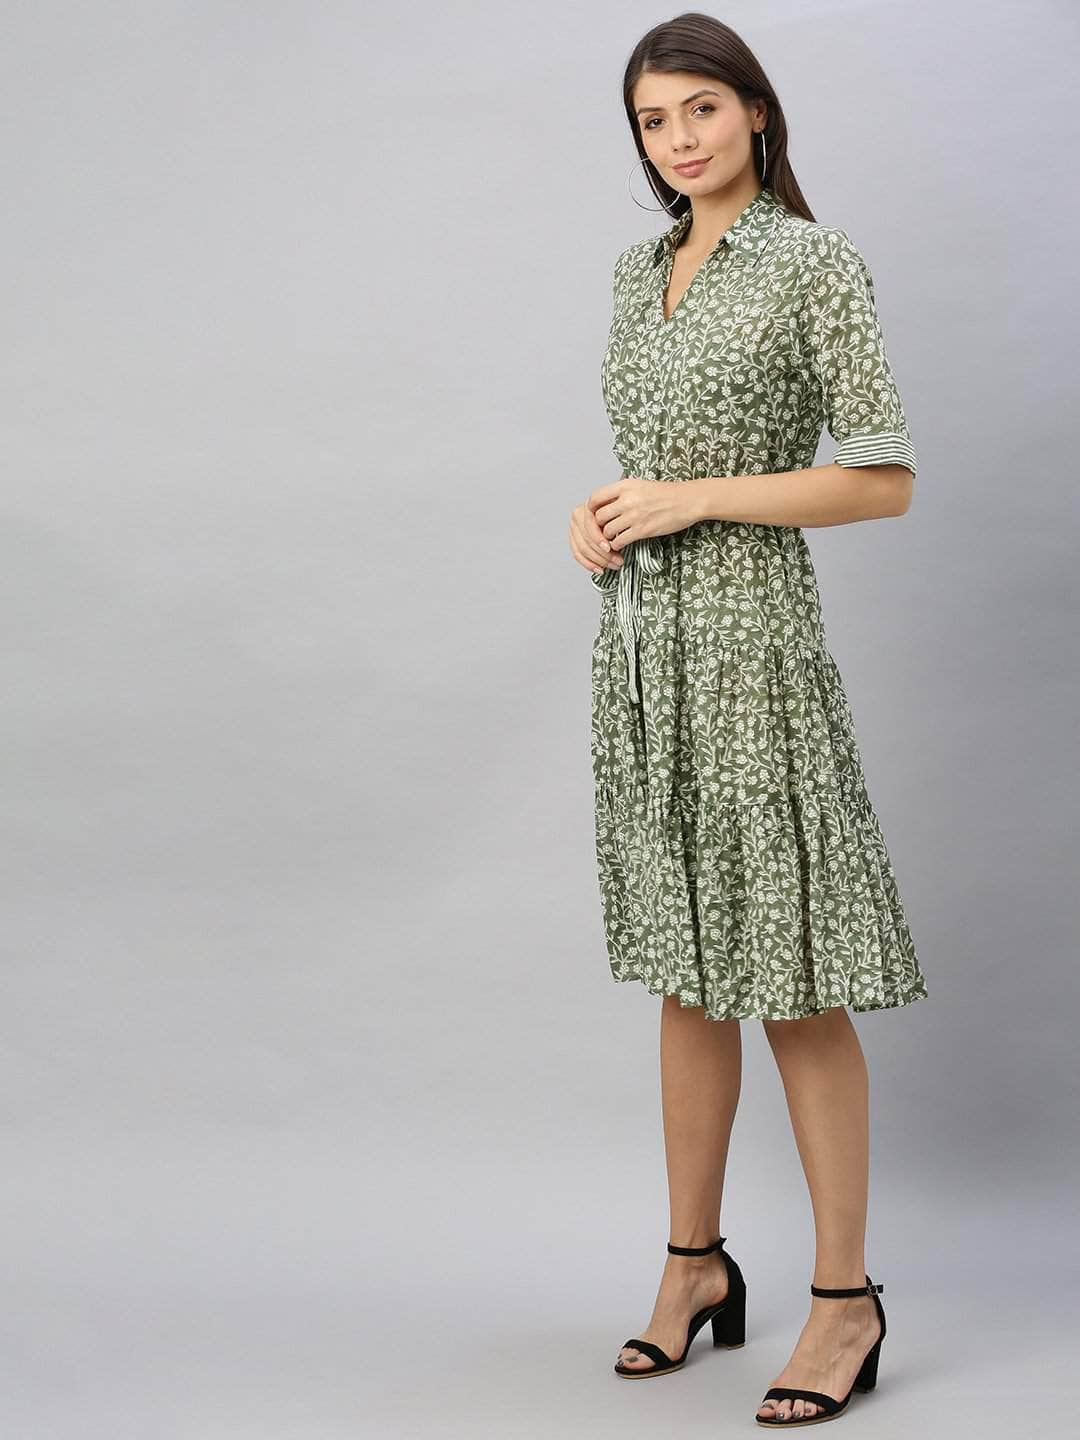 Olive Cotton Dress Women S Semi Formal Wear Regular Fit Cotton Dress Cottonworld Fabulous fit® allows you to customize your dress form to match your shape, whatever your size may be. inr